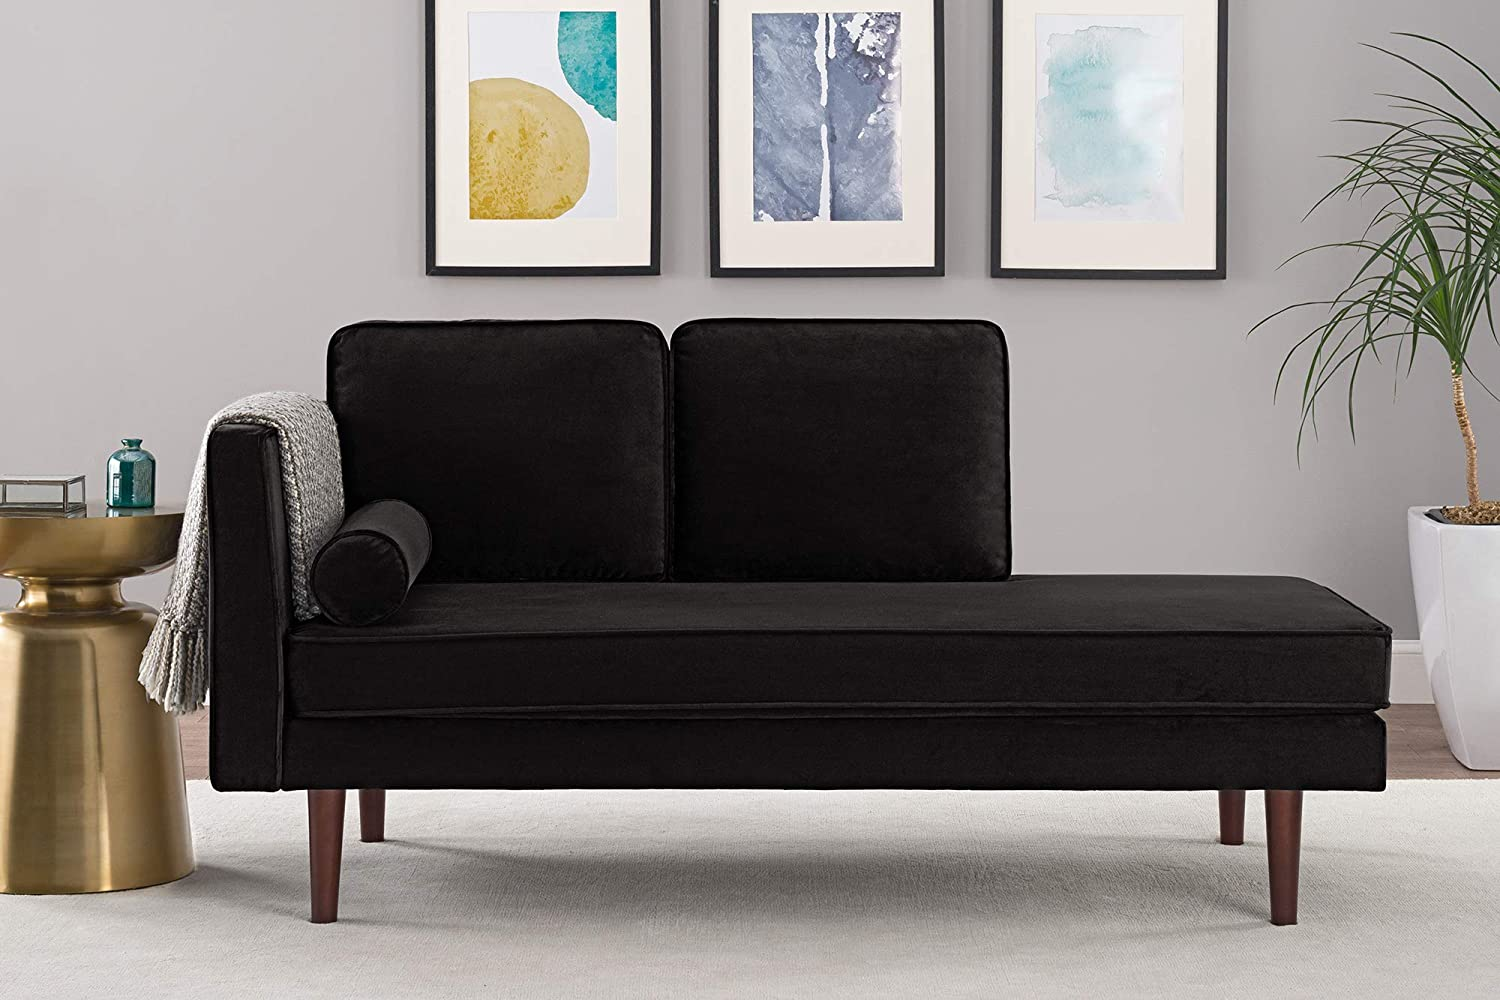 DHP Nola Mid Century Modern Upholstered Daybed and Chaise, Multifunctional and Versatile, Black Velvet 2193059